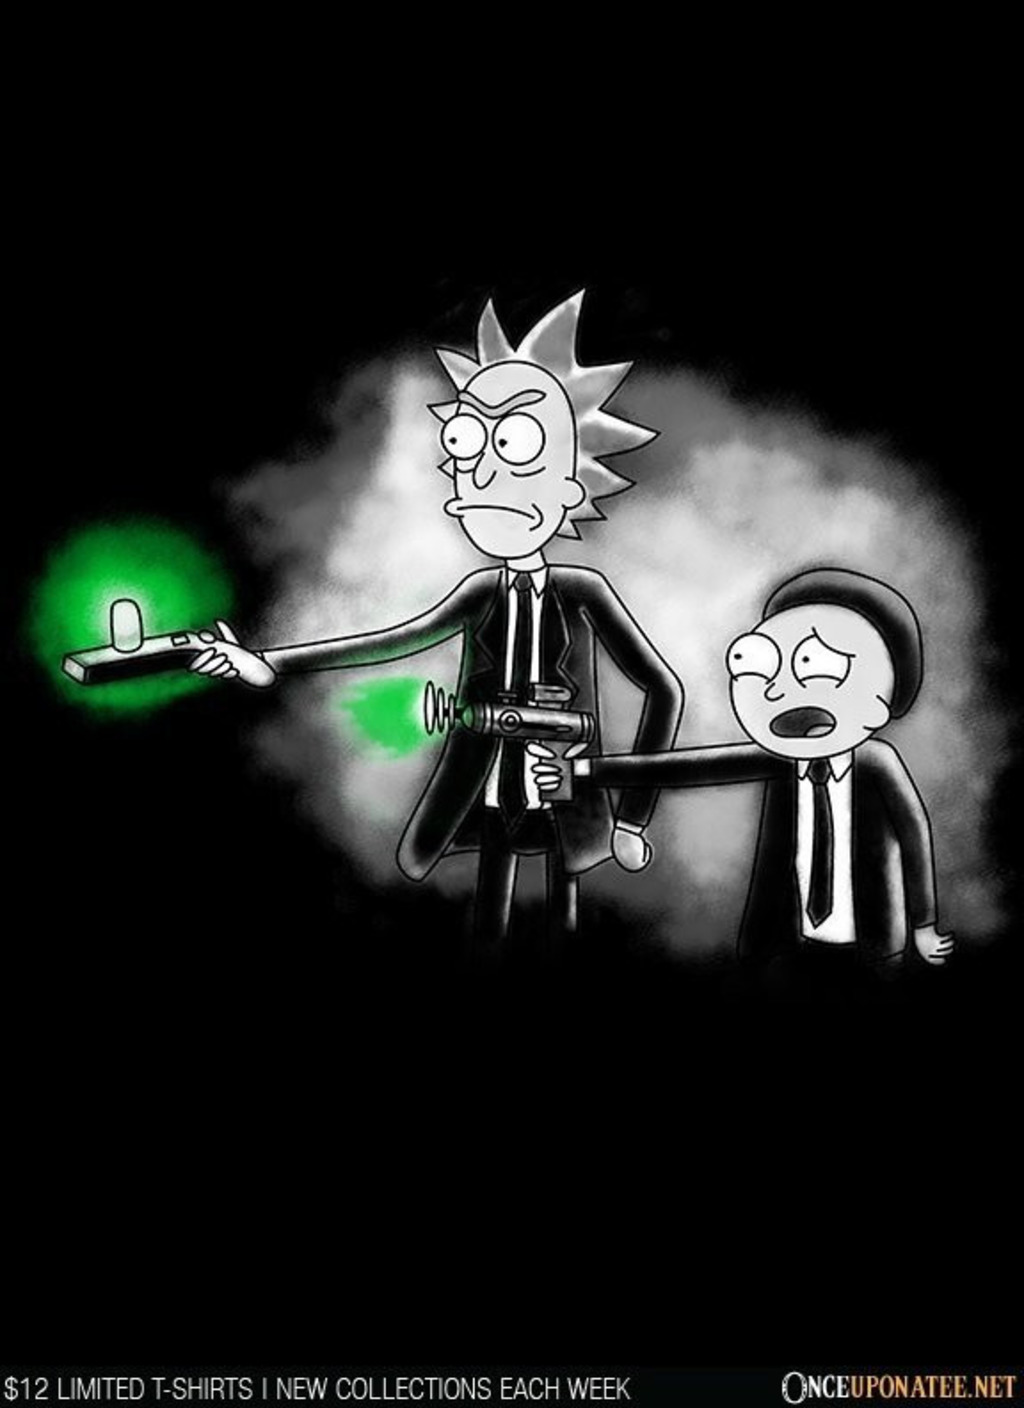 Once Upon a Tee: Pulp Ricktion